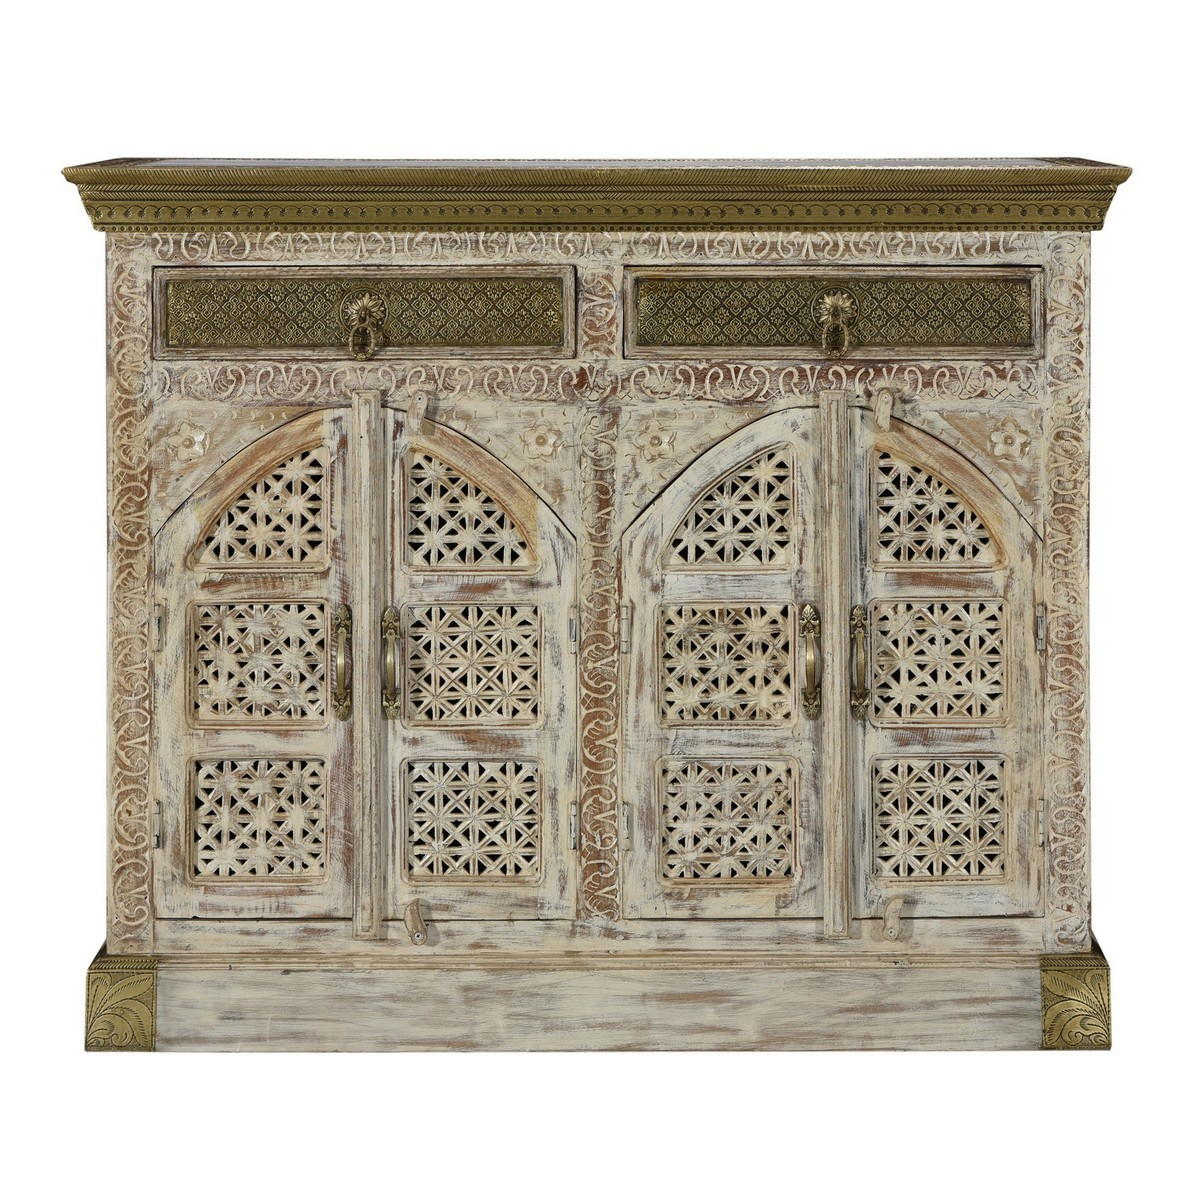 Diengie Embossed Metal & Carved Timber 4 Door 2 Drawer Sideboard, 116cm